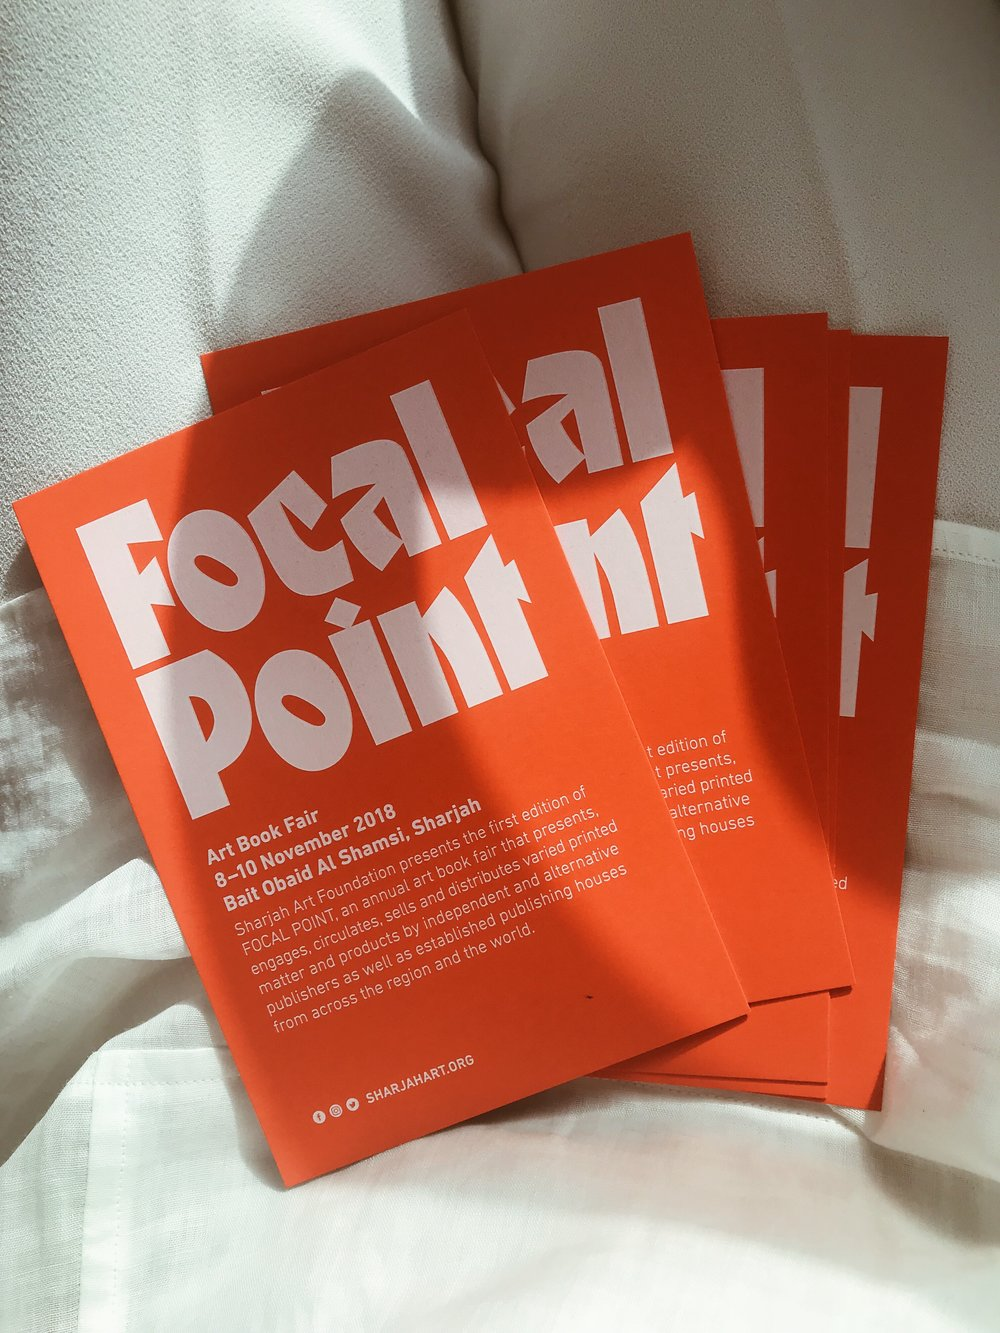 FOCAL POINT is Sharjah Art Foundation's annual art book fair running from 8 - 11 November 2018